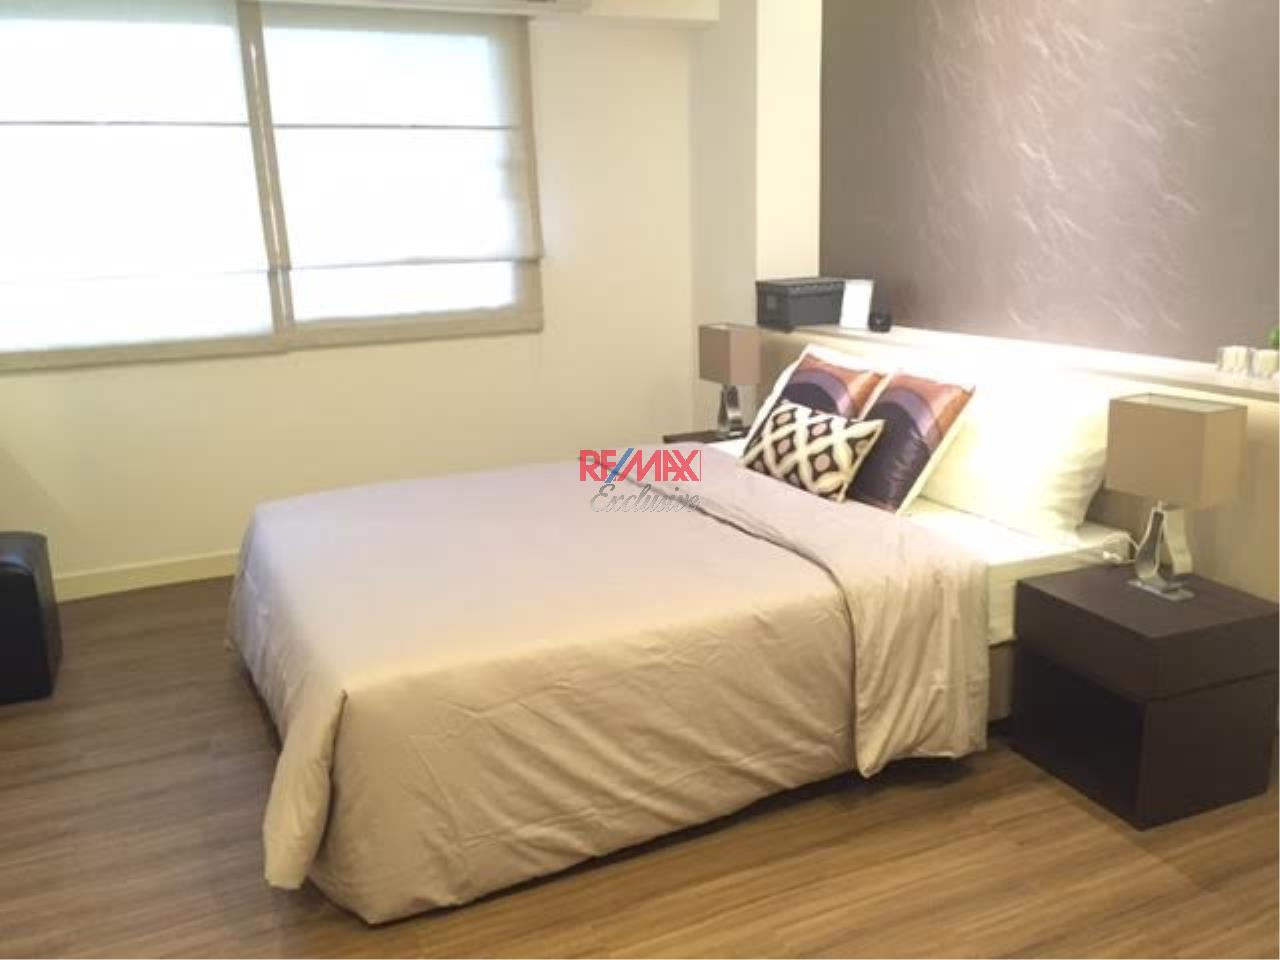 RE/MAX Exclusive Agency's Big Space Apartment in Thonglor for rent 86,000 THB 7